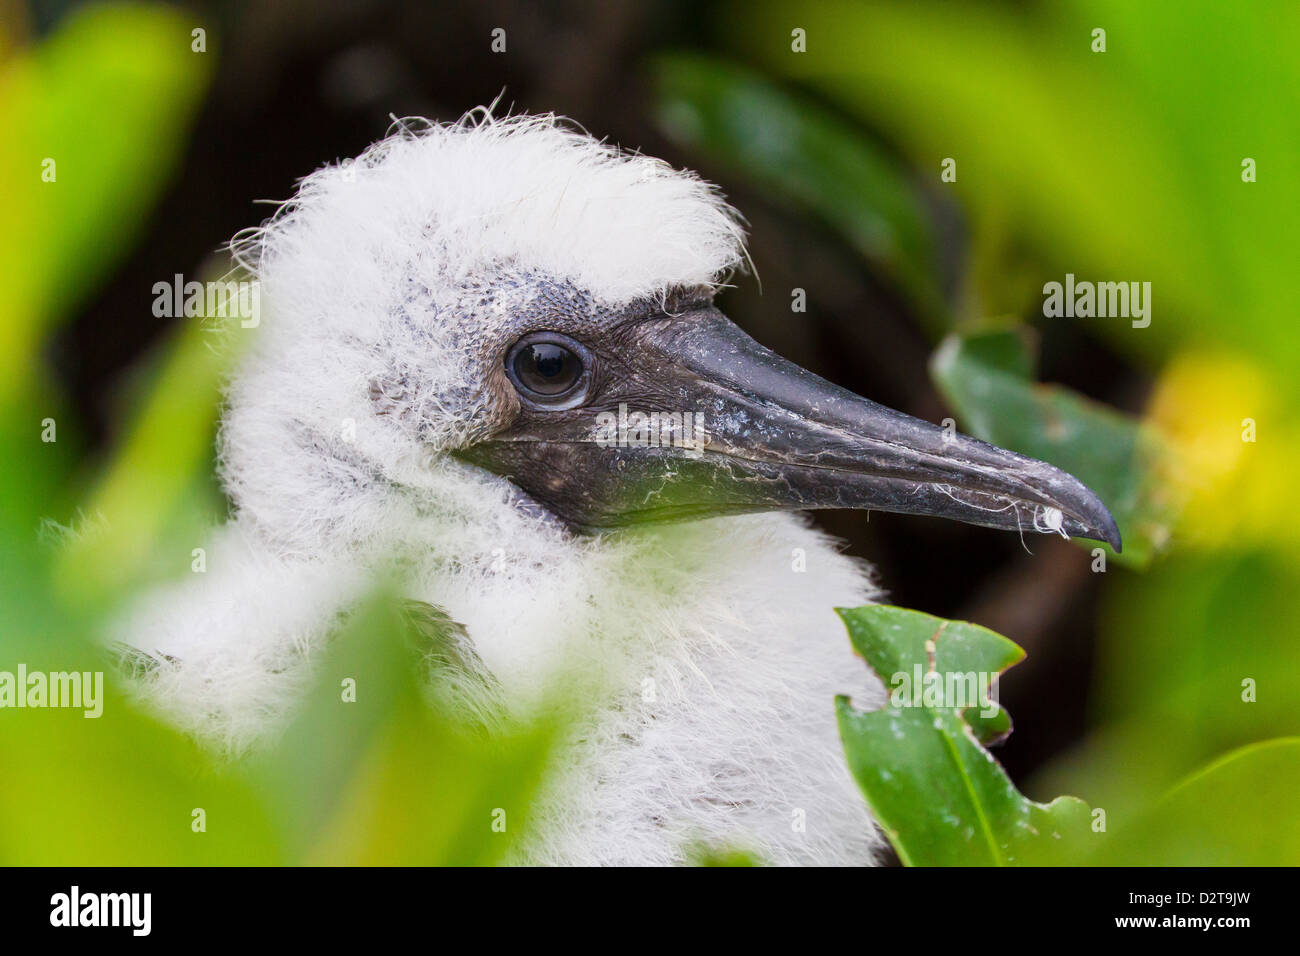 Red-footed booby (Sula sula) chick, Genovesa Island,  Galapagos Islands, Ecuador, South America - Stock Image